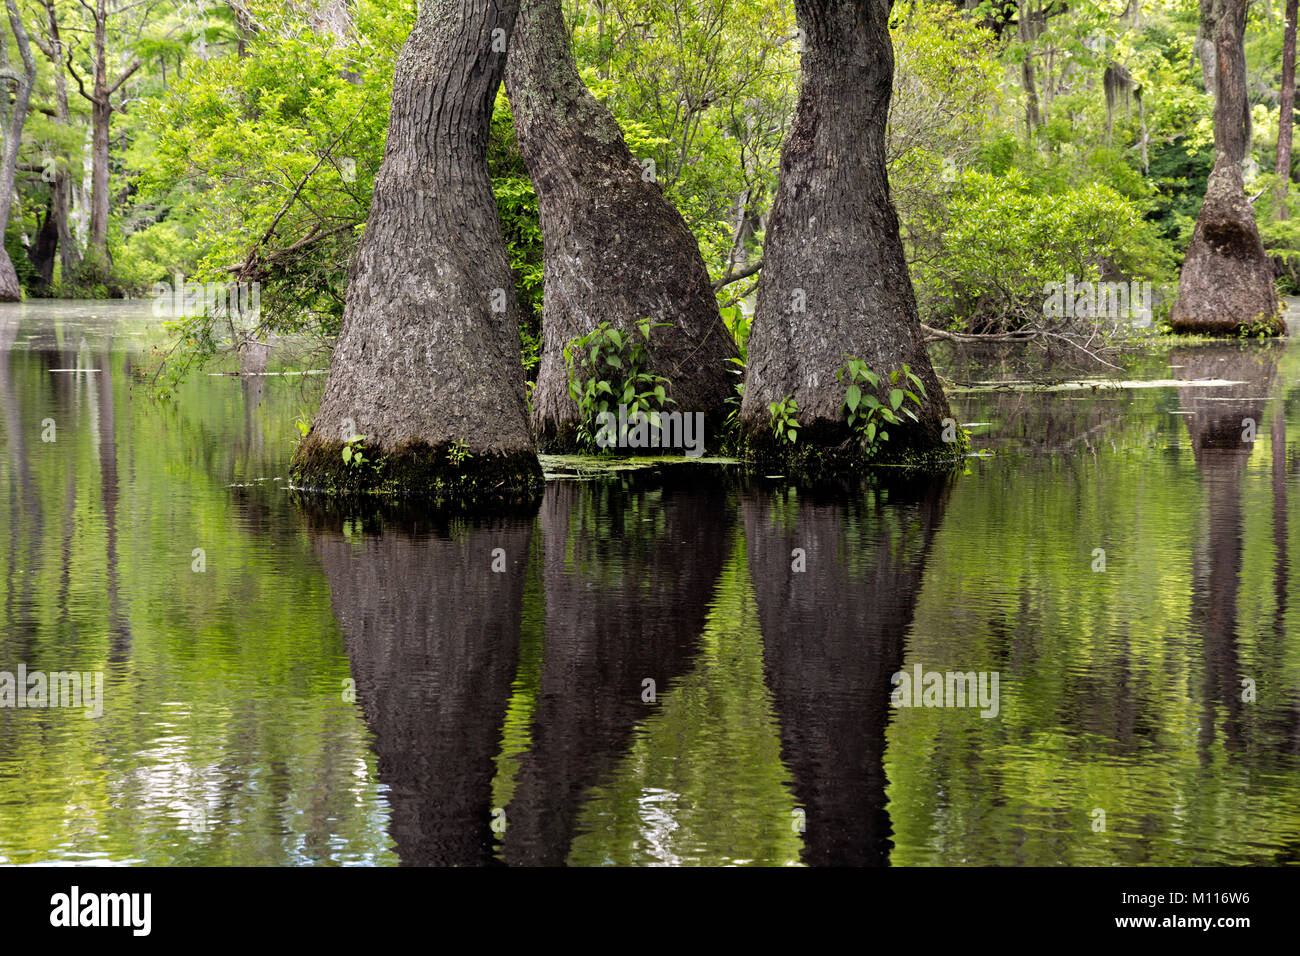 NC01451--00...NORTH CAROLINA - Graceful tupelo gum trees rising out of the cypress swamp reflecting in the still - Stock Image